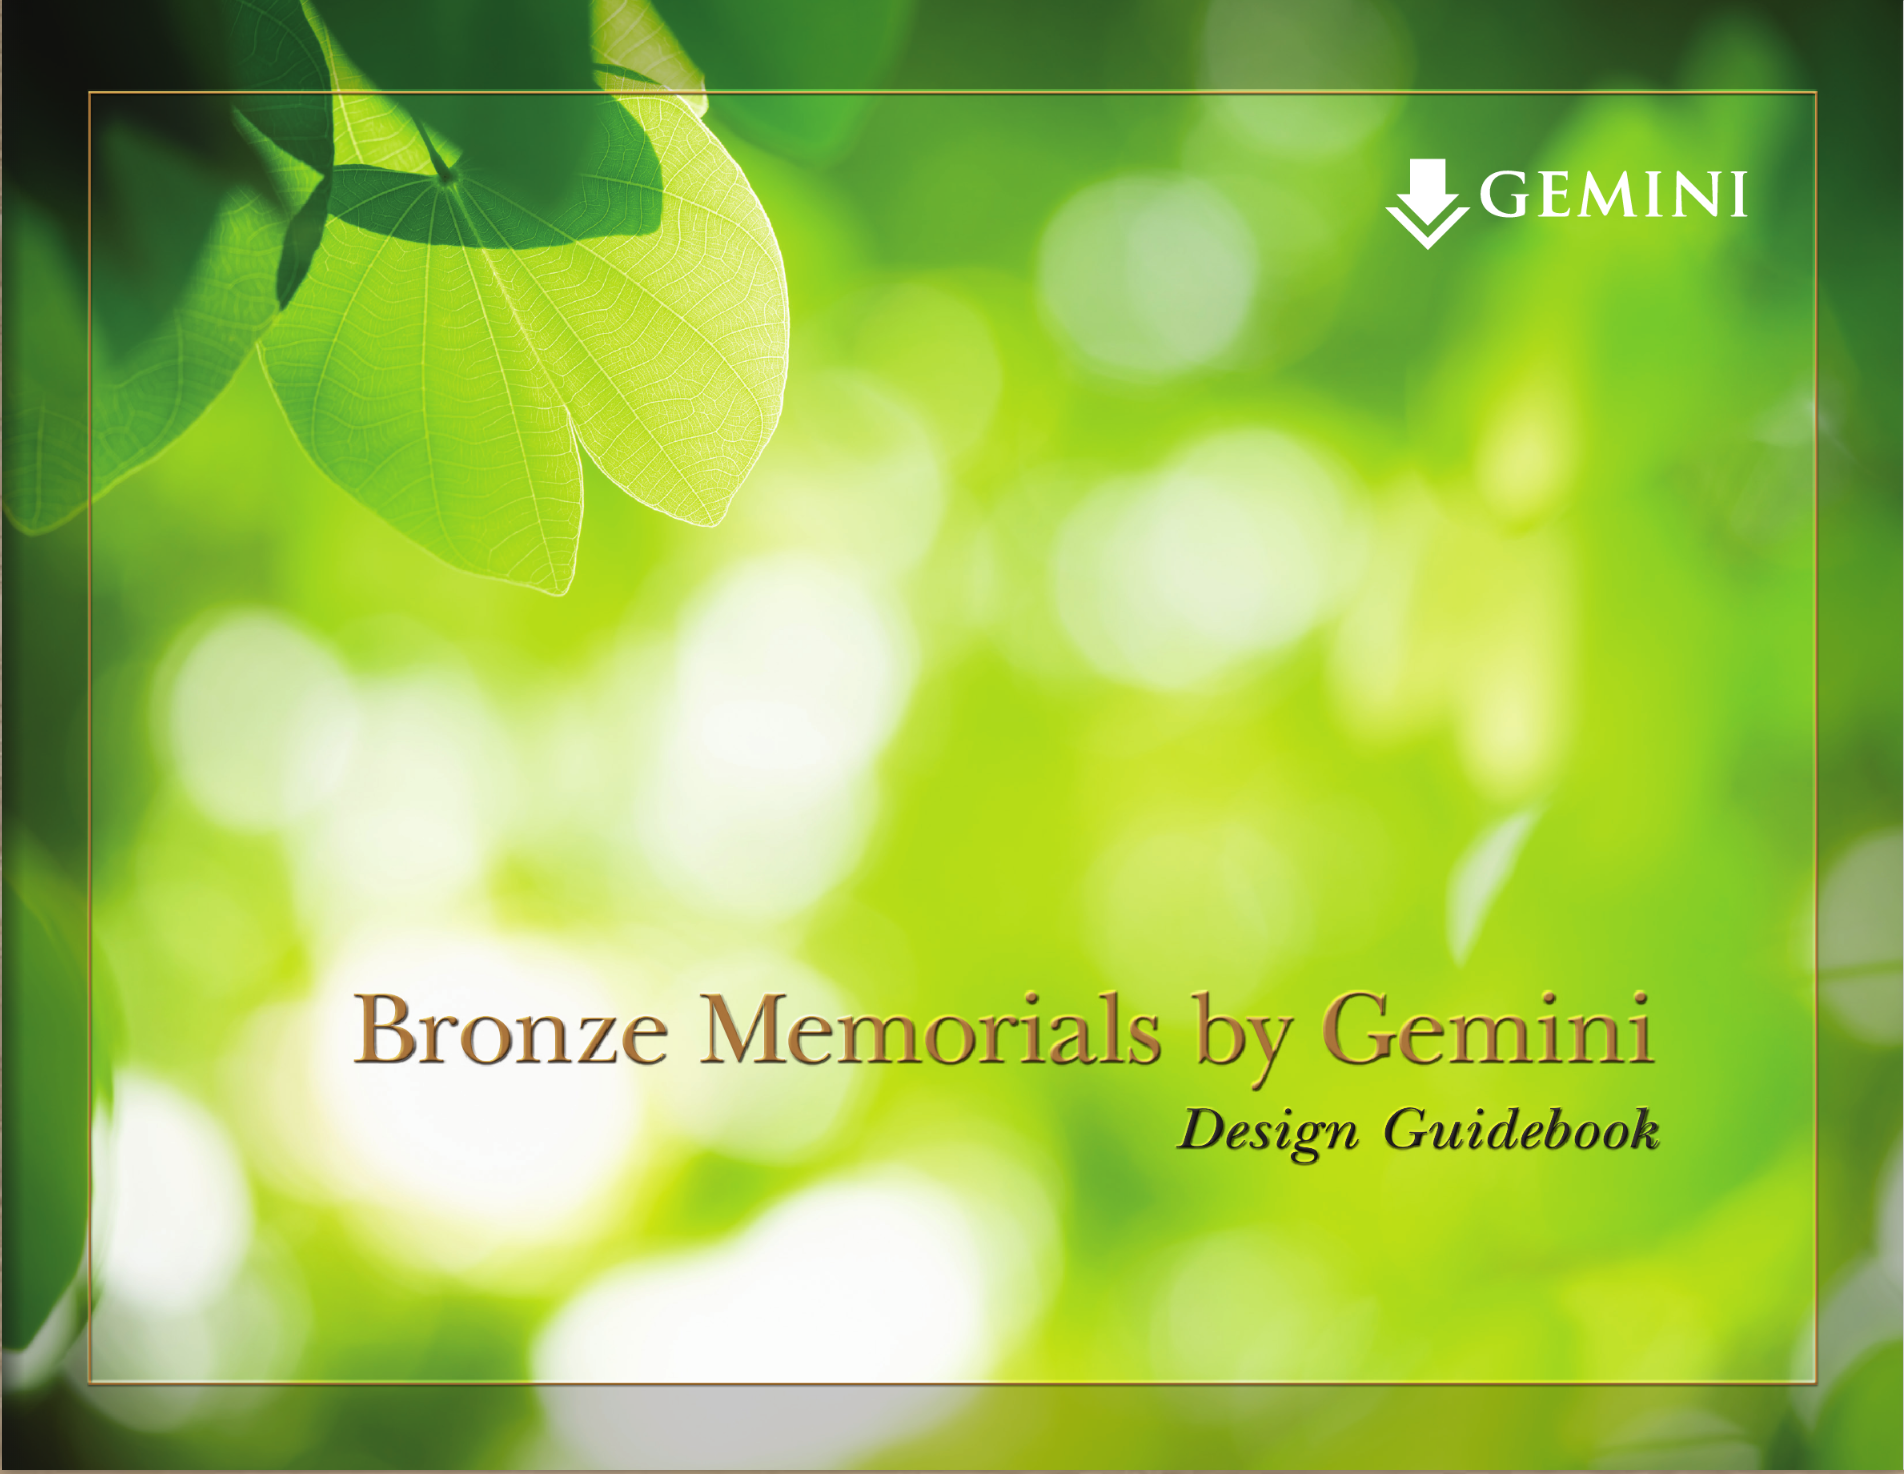 Gemini Bronze memorial design catalog catalog